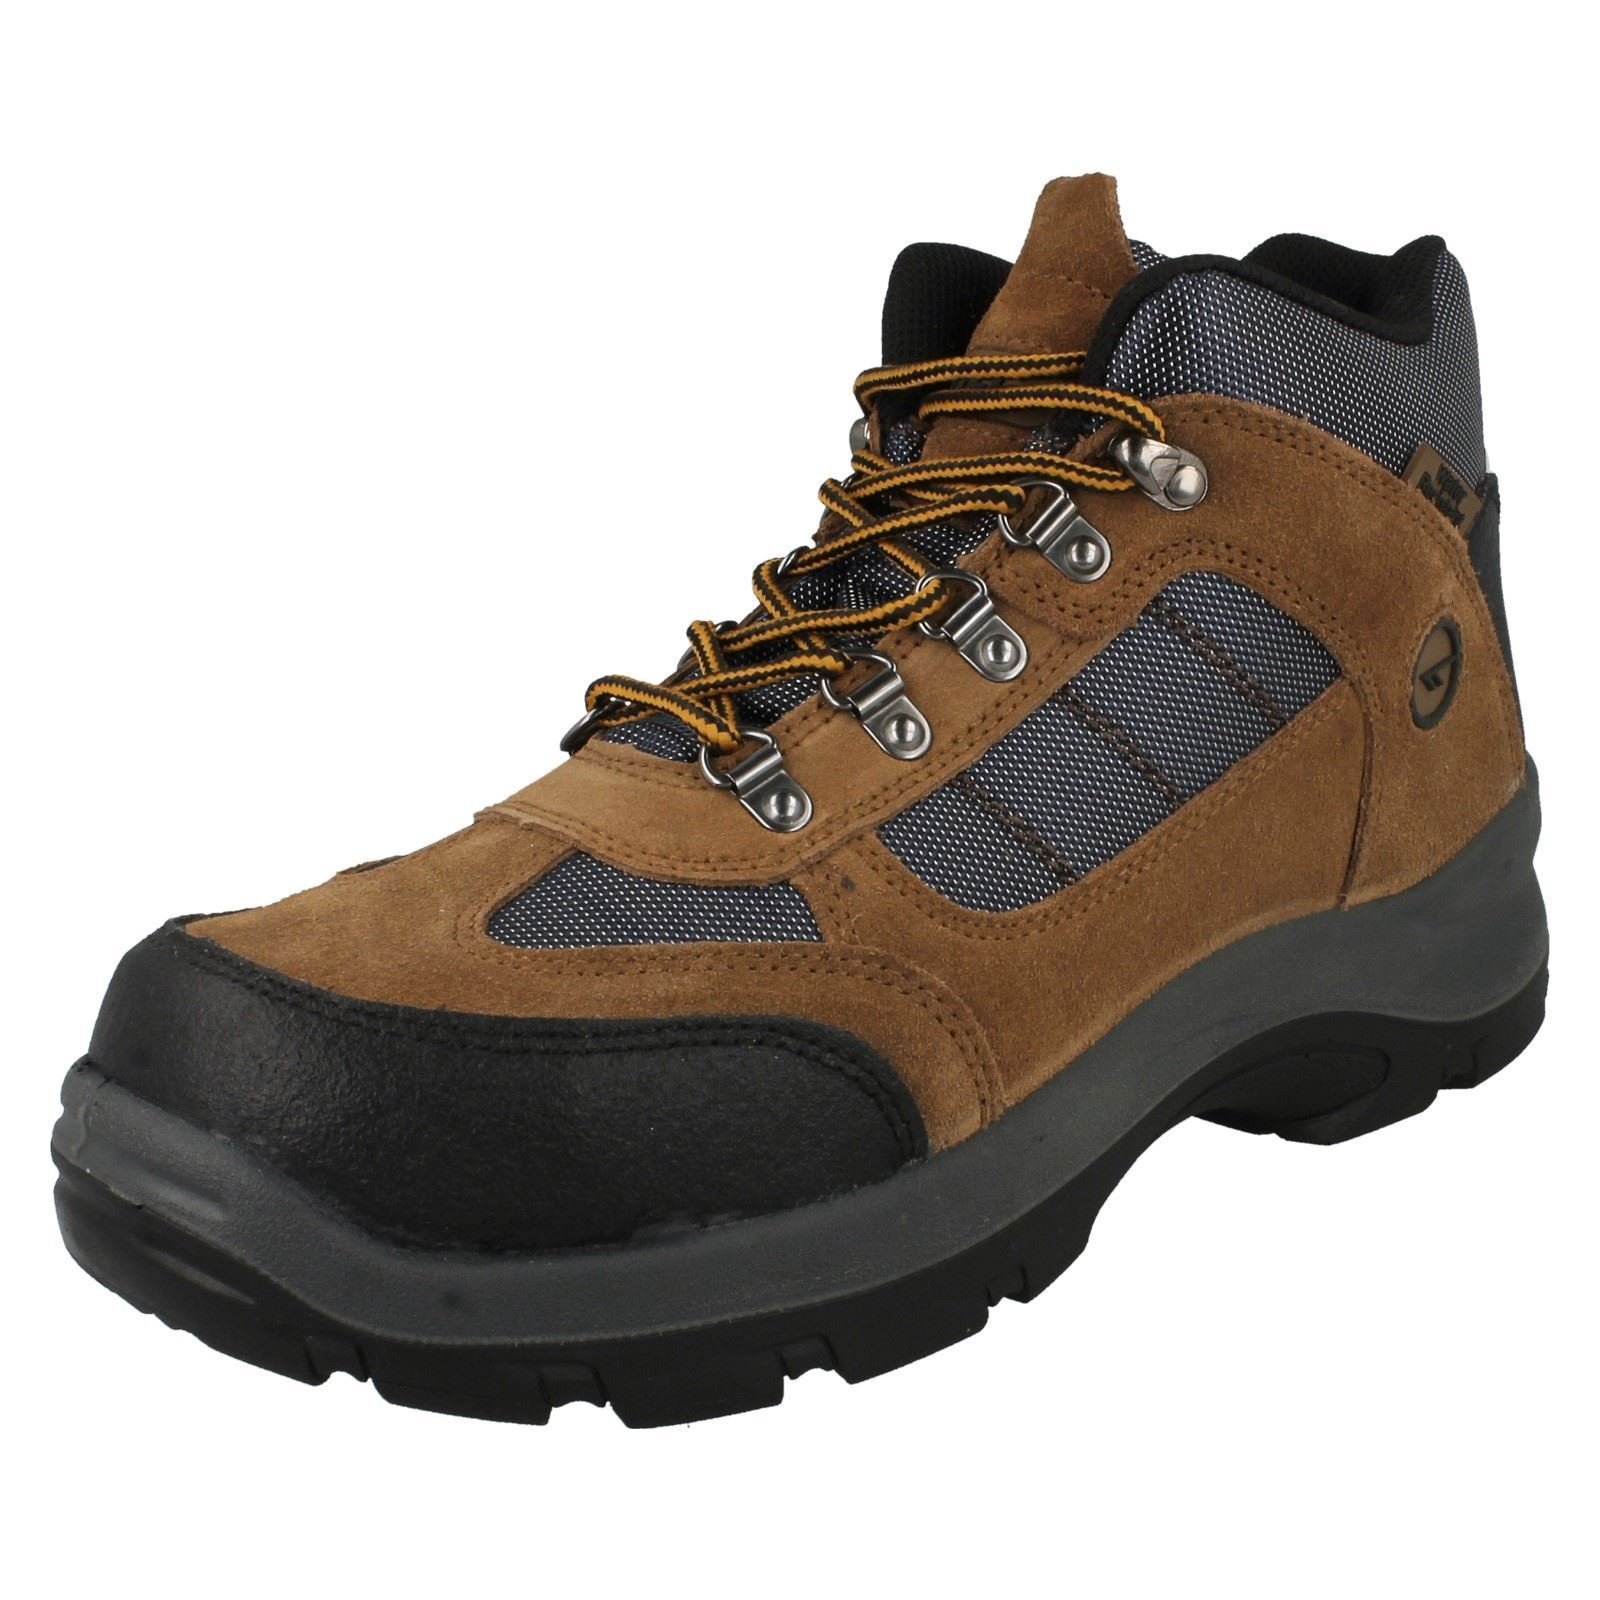 Mens Hi-Tec Casual Safehike Mid Safety Boots